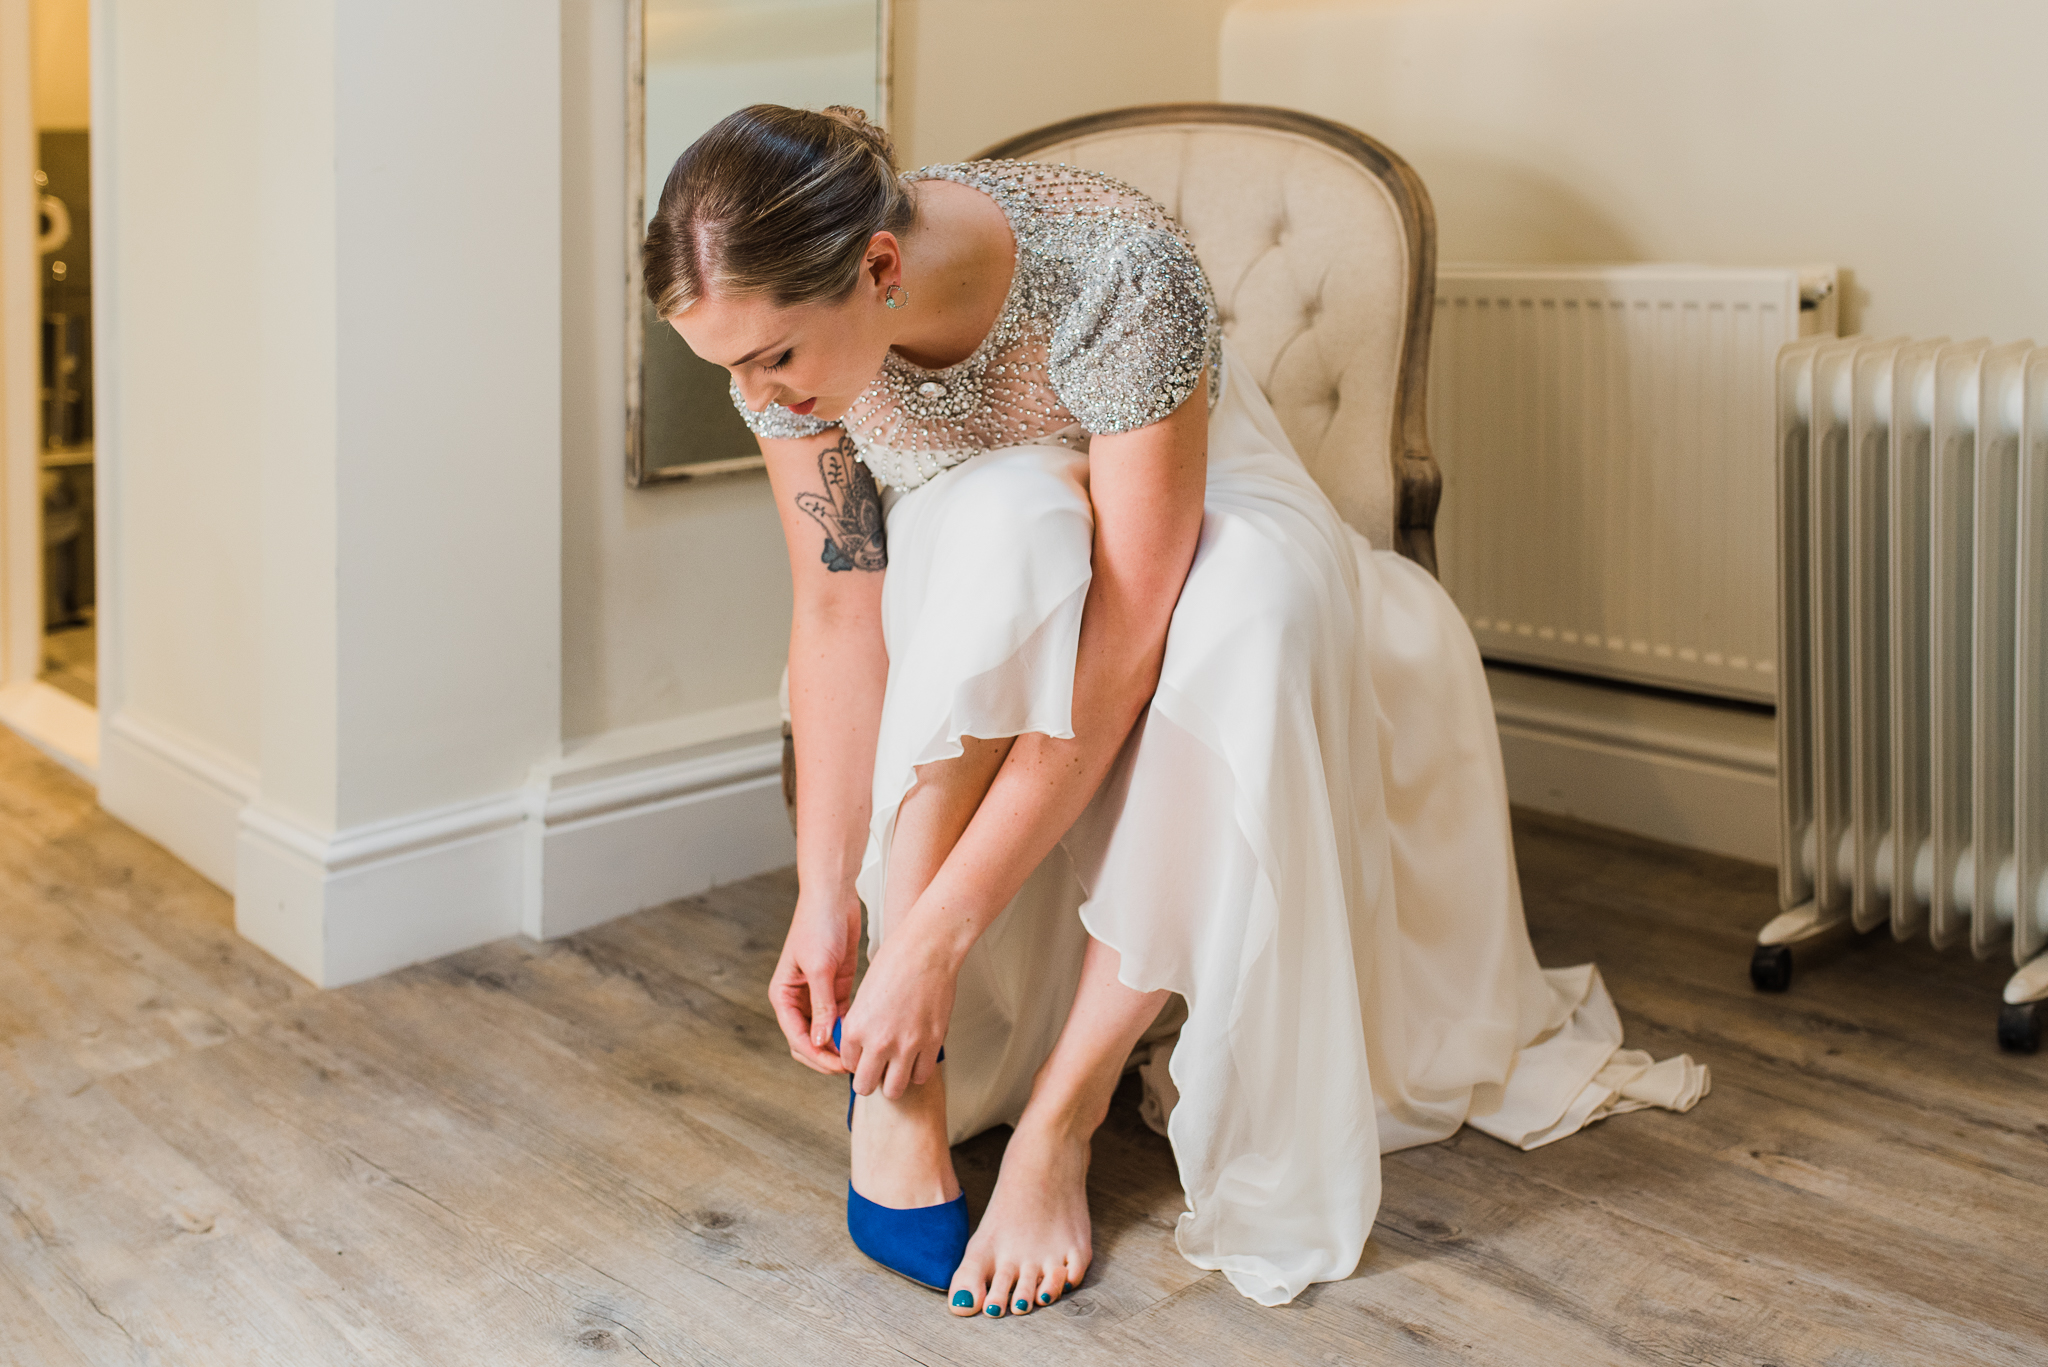 Bride putting blue shoes on in Lapstone Barn wedding